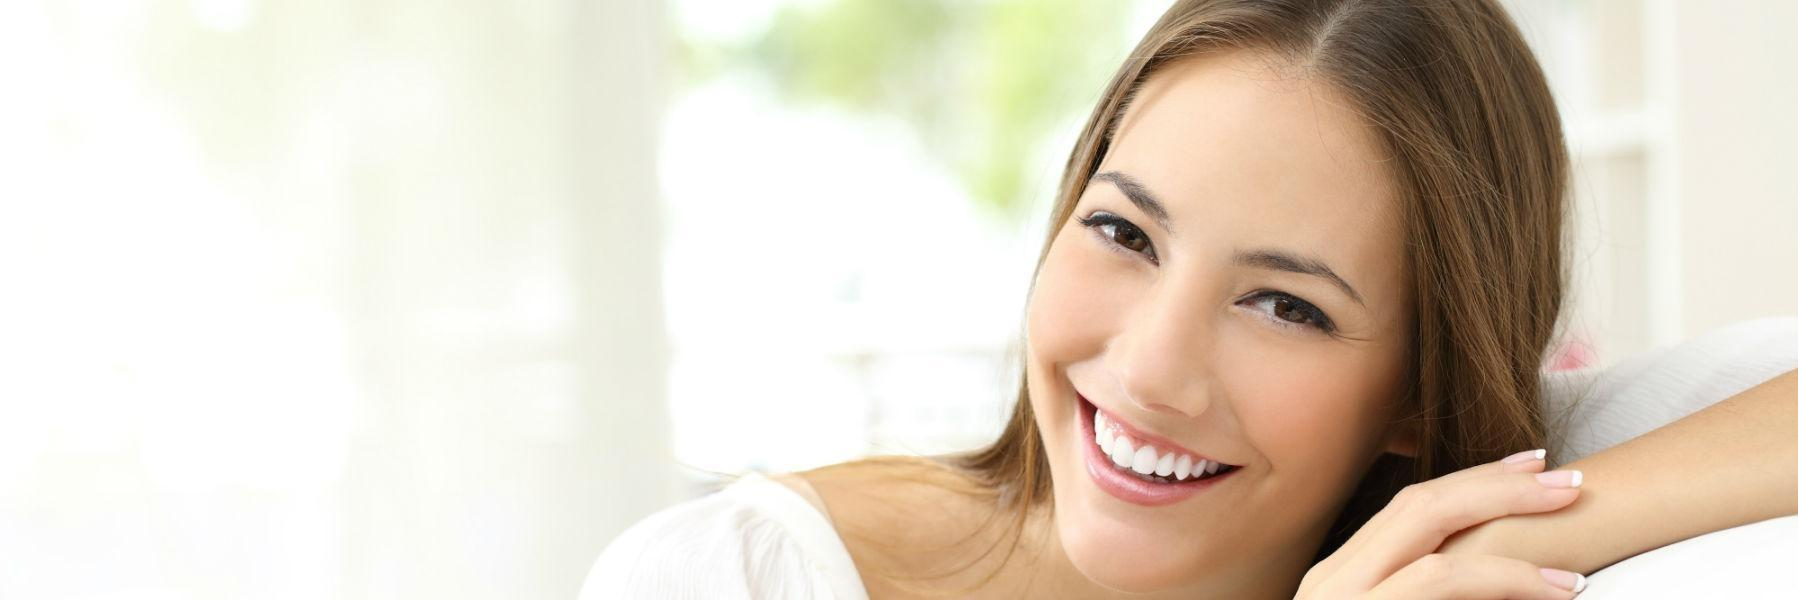 Dental Implants in Humble TX